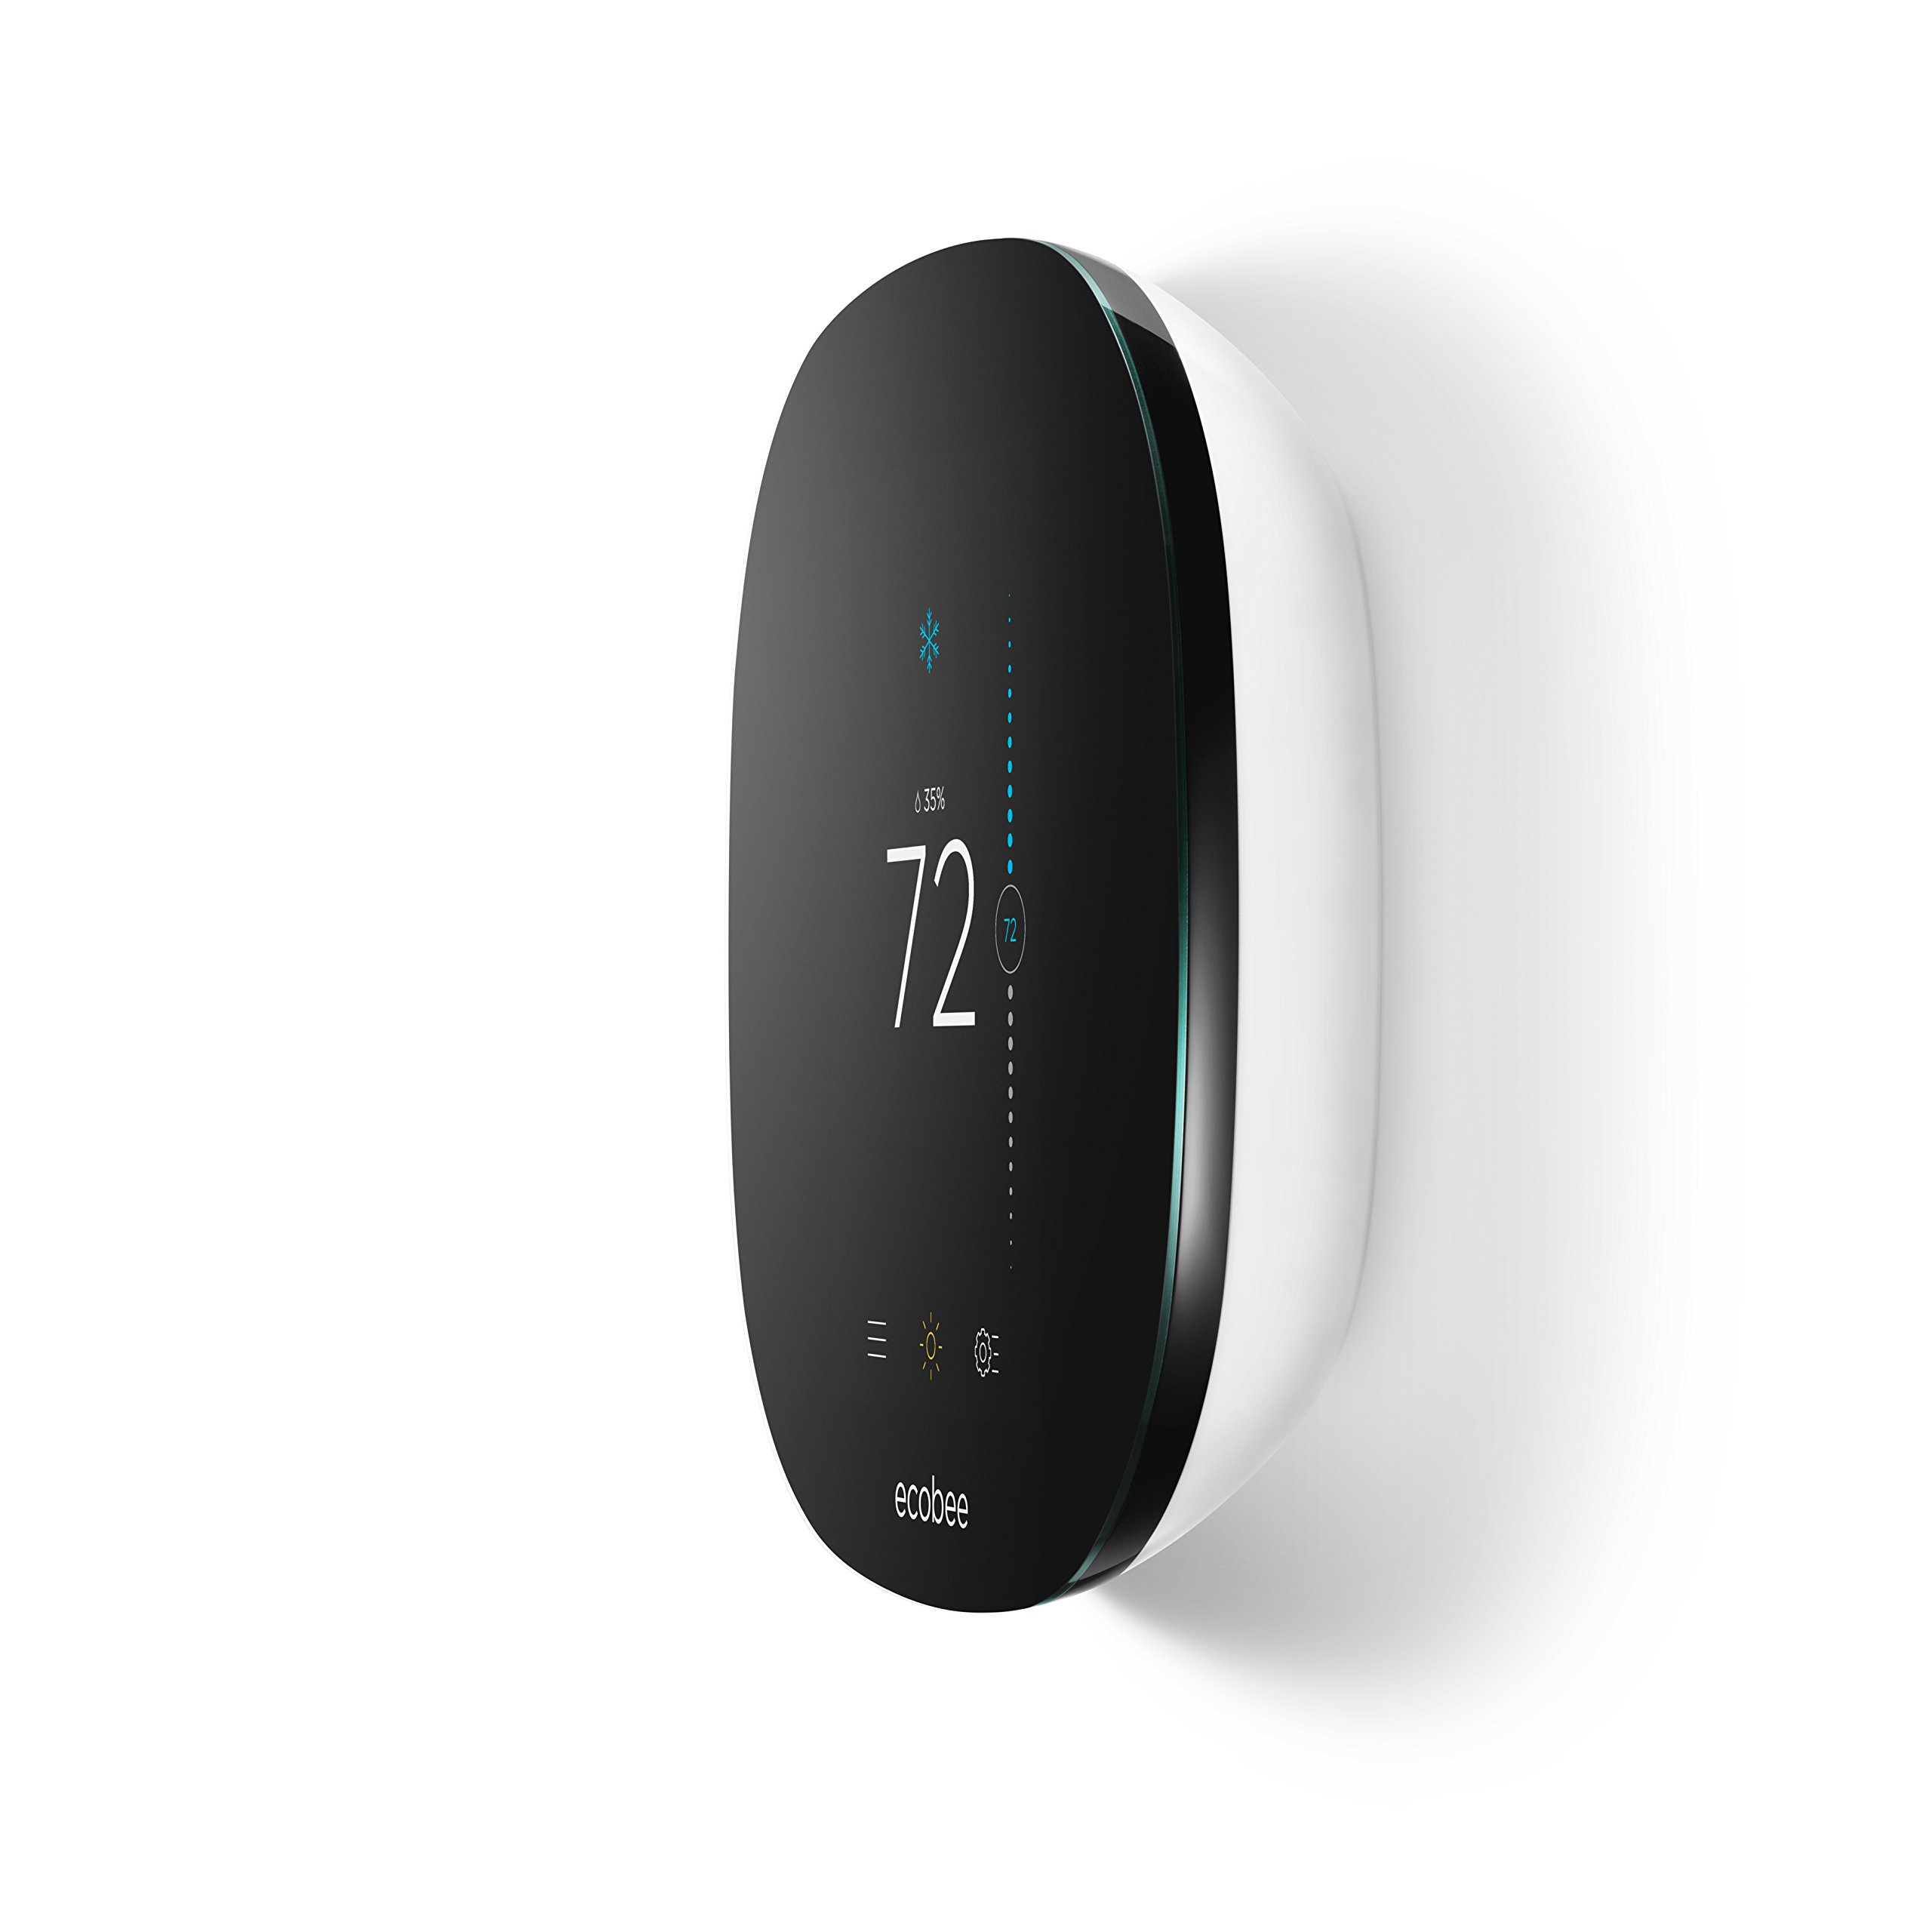 Ecobee3 Lite Thermostat, Wi-Fi, Works with Amazon Alexa by ecobee (Image #2)